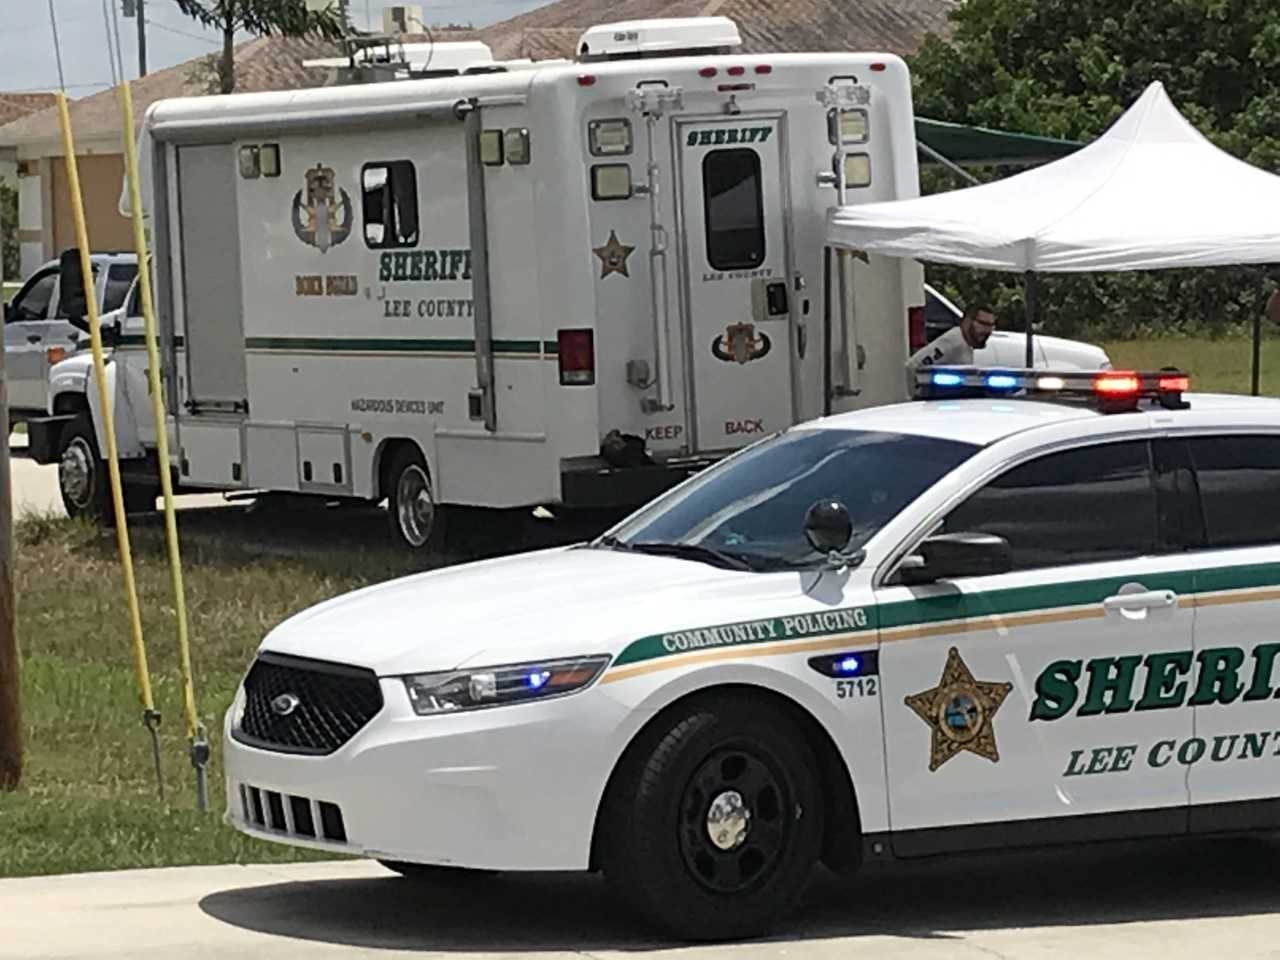 Authorities stationed outside a Cape Coral home on April 30, 2019.